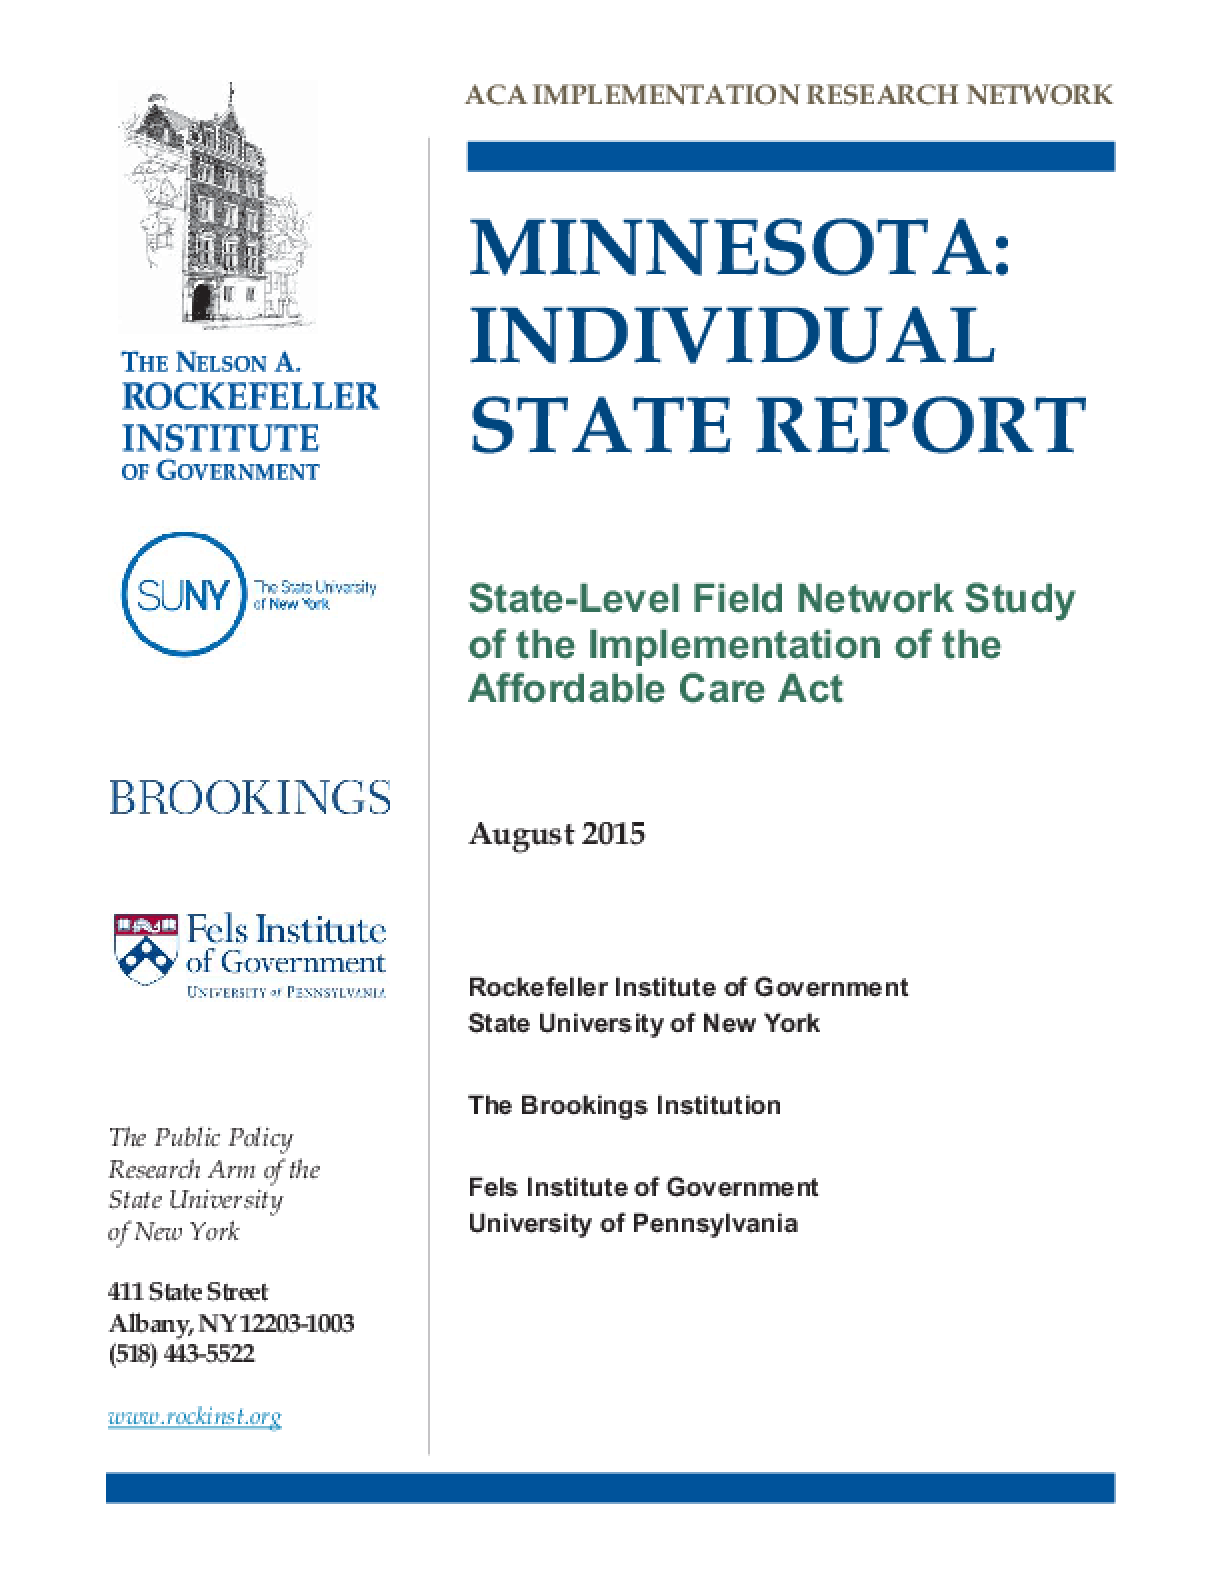 Minnesota: Individual State Report - State Level Field Network Study of the Implementation of the Affordable Care Act